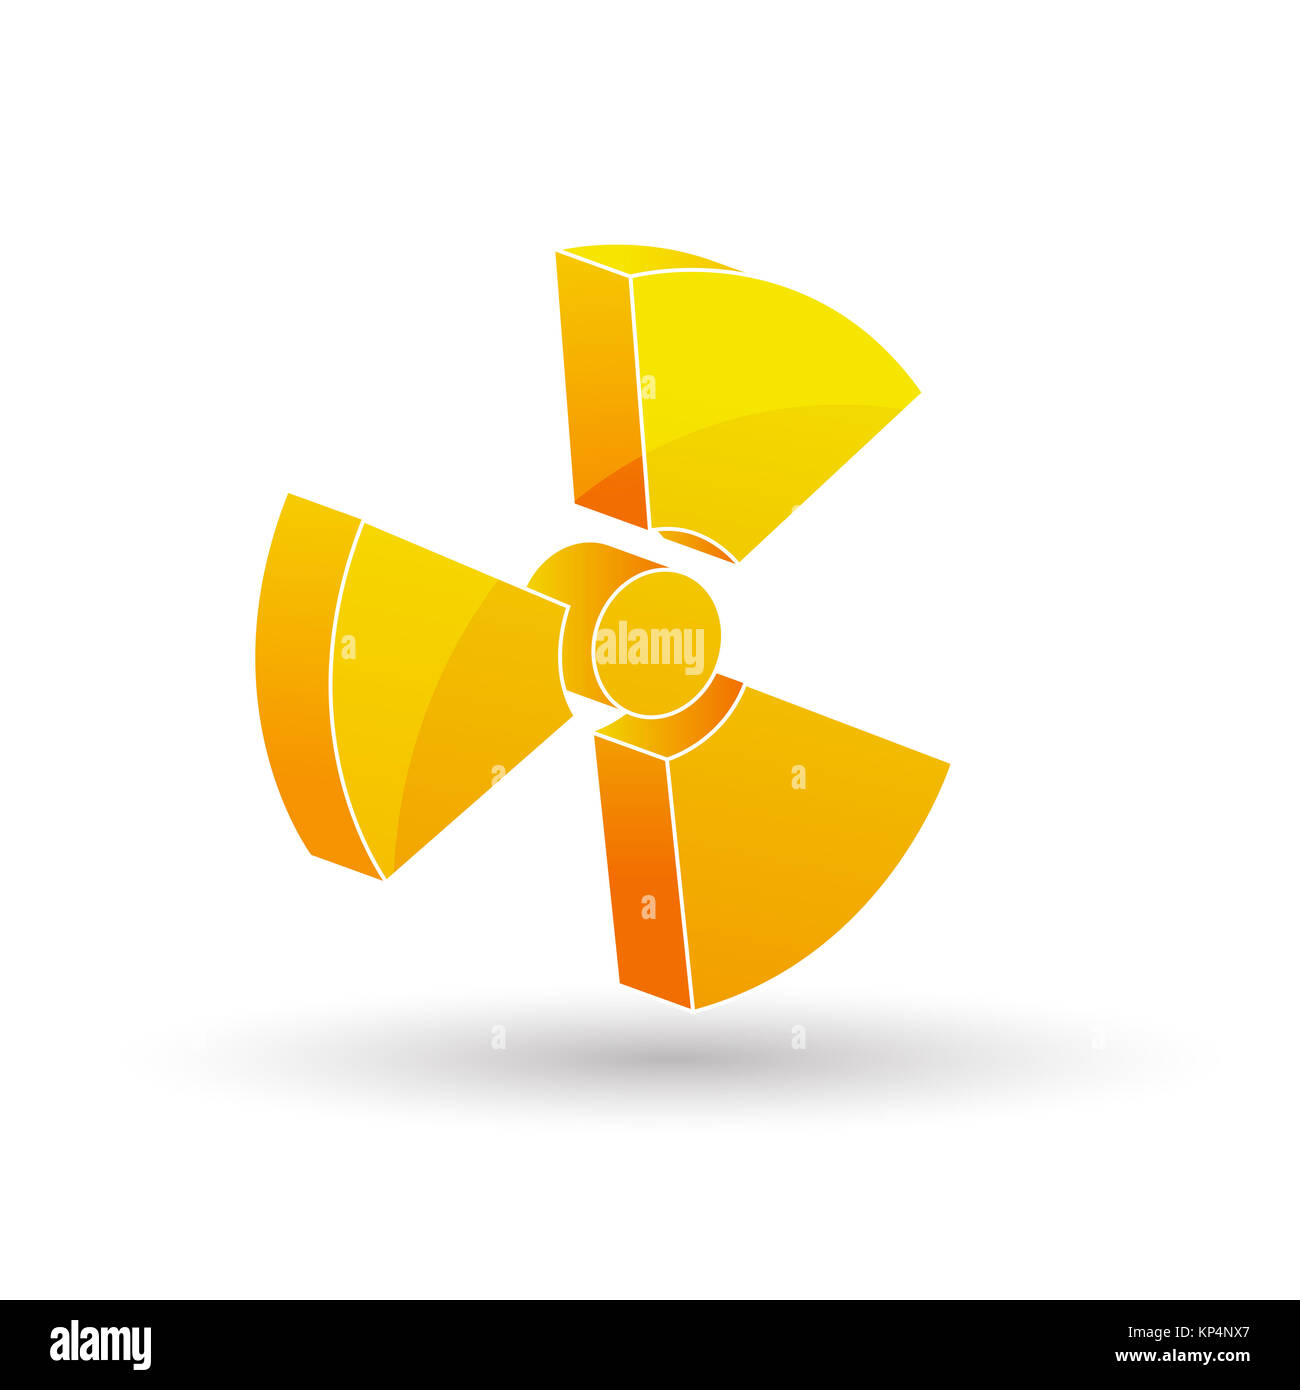 illustration of nuclear icon in white background - Stock Image